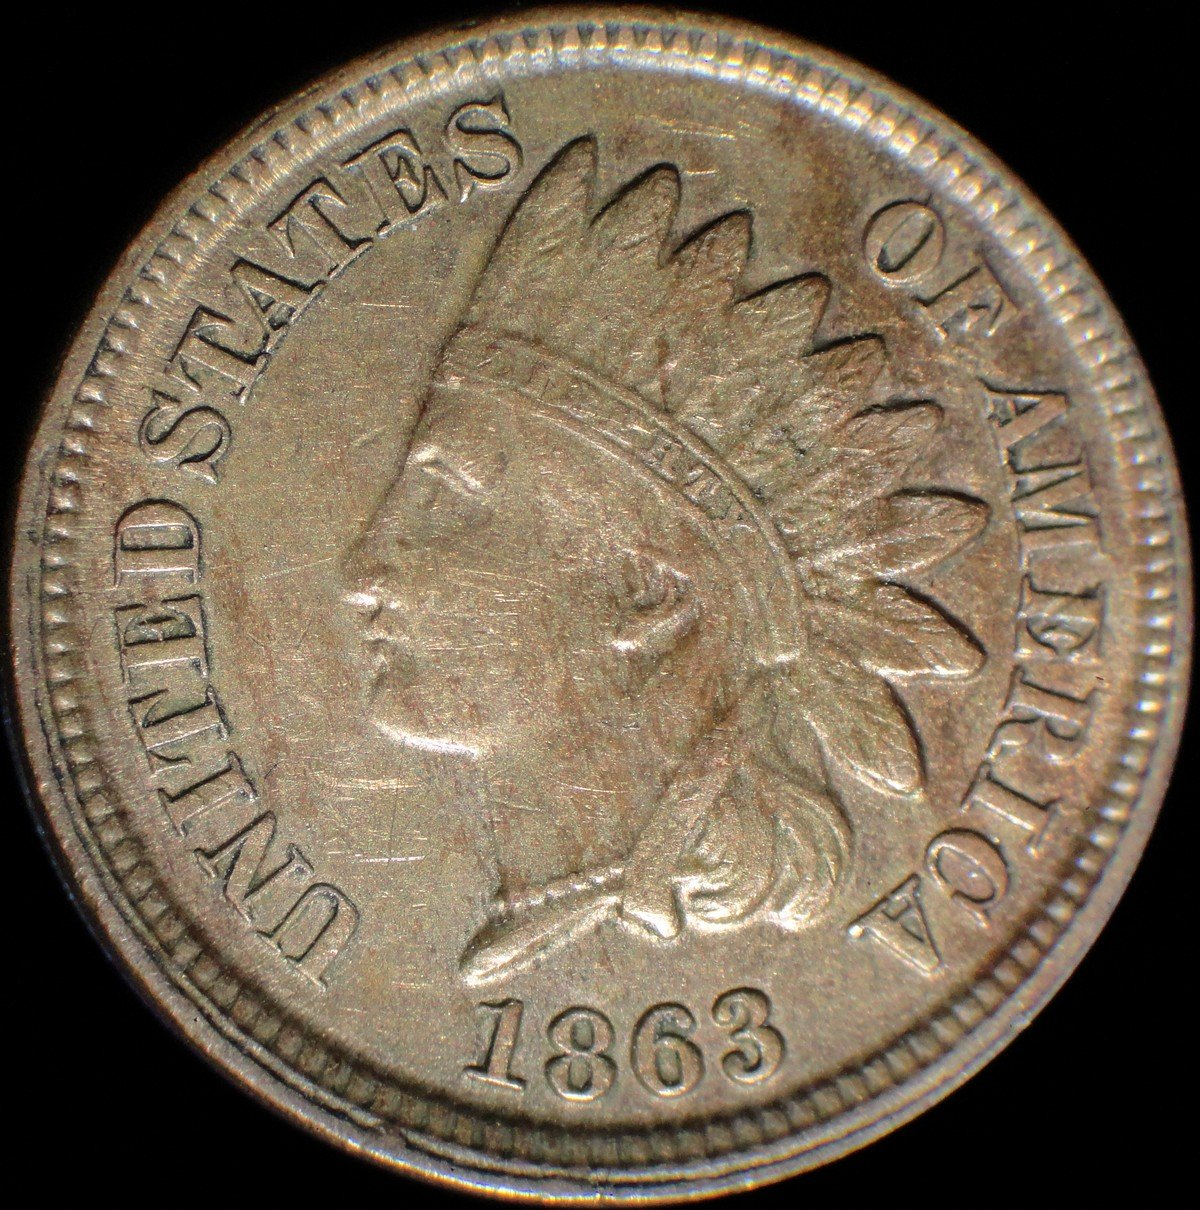 1863 Obverse of CRK-001 - Indian Head Penny